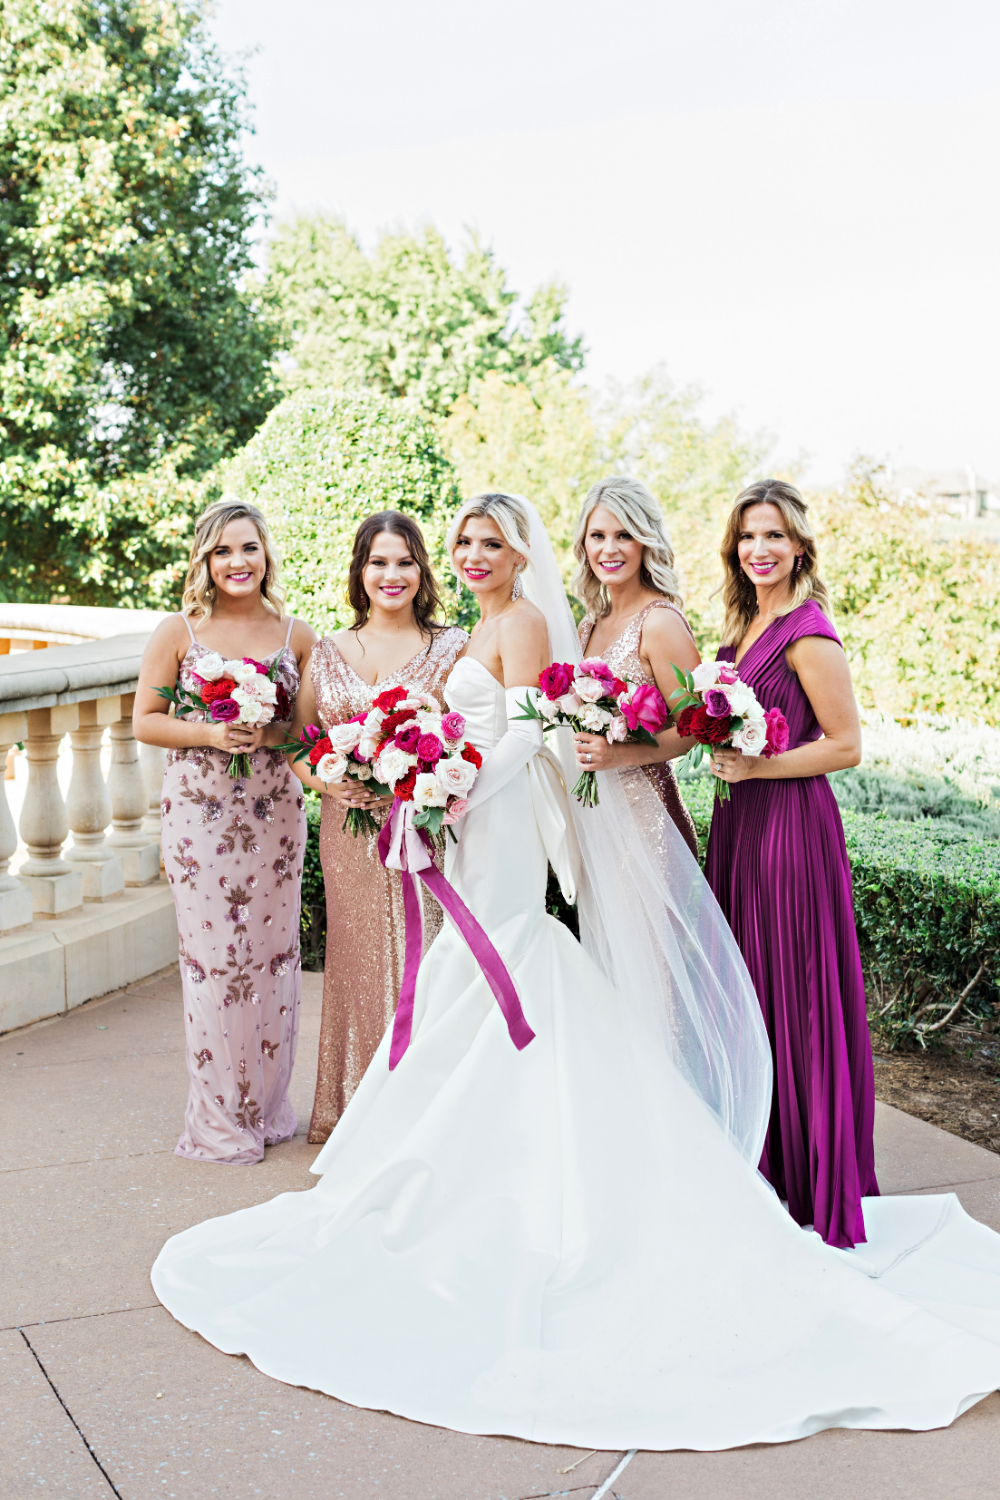 Bridesmaids & Body Positivity: How Picking their Gown Makes a Difference